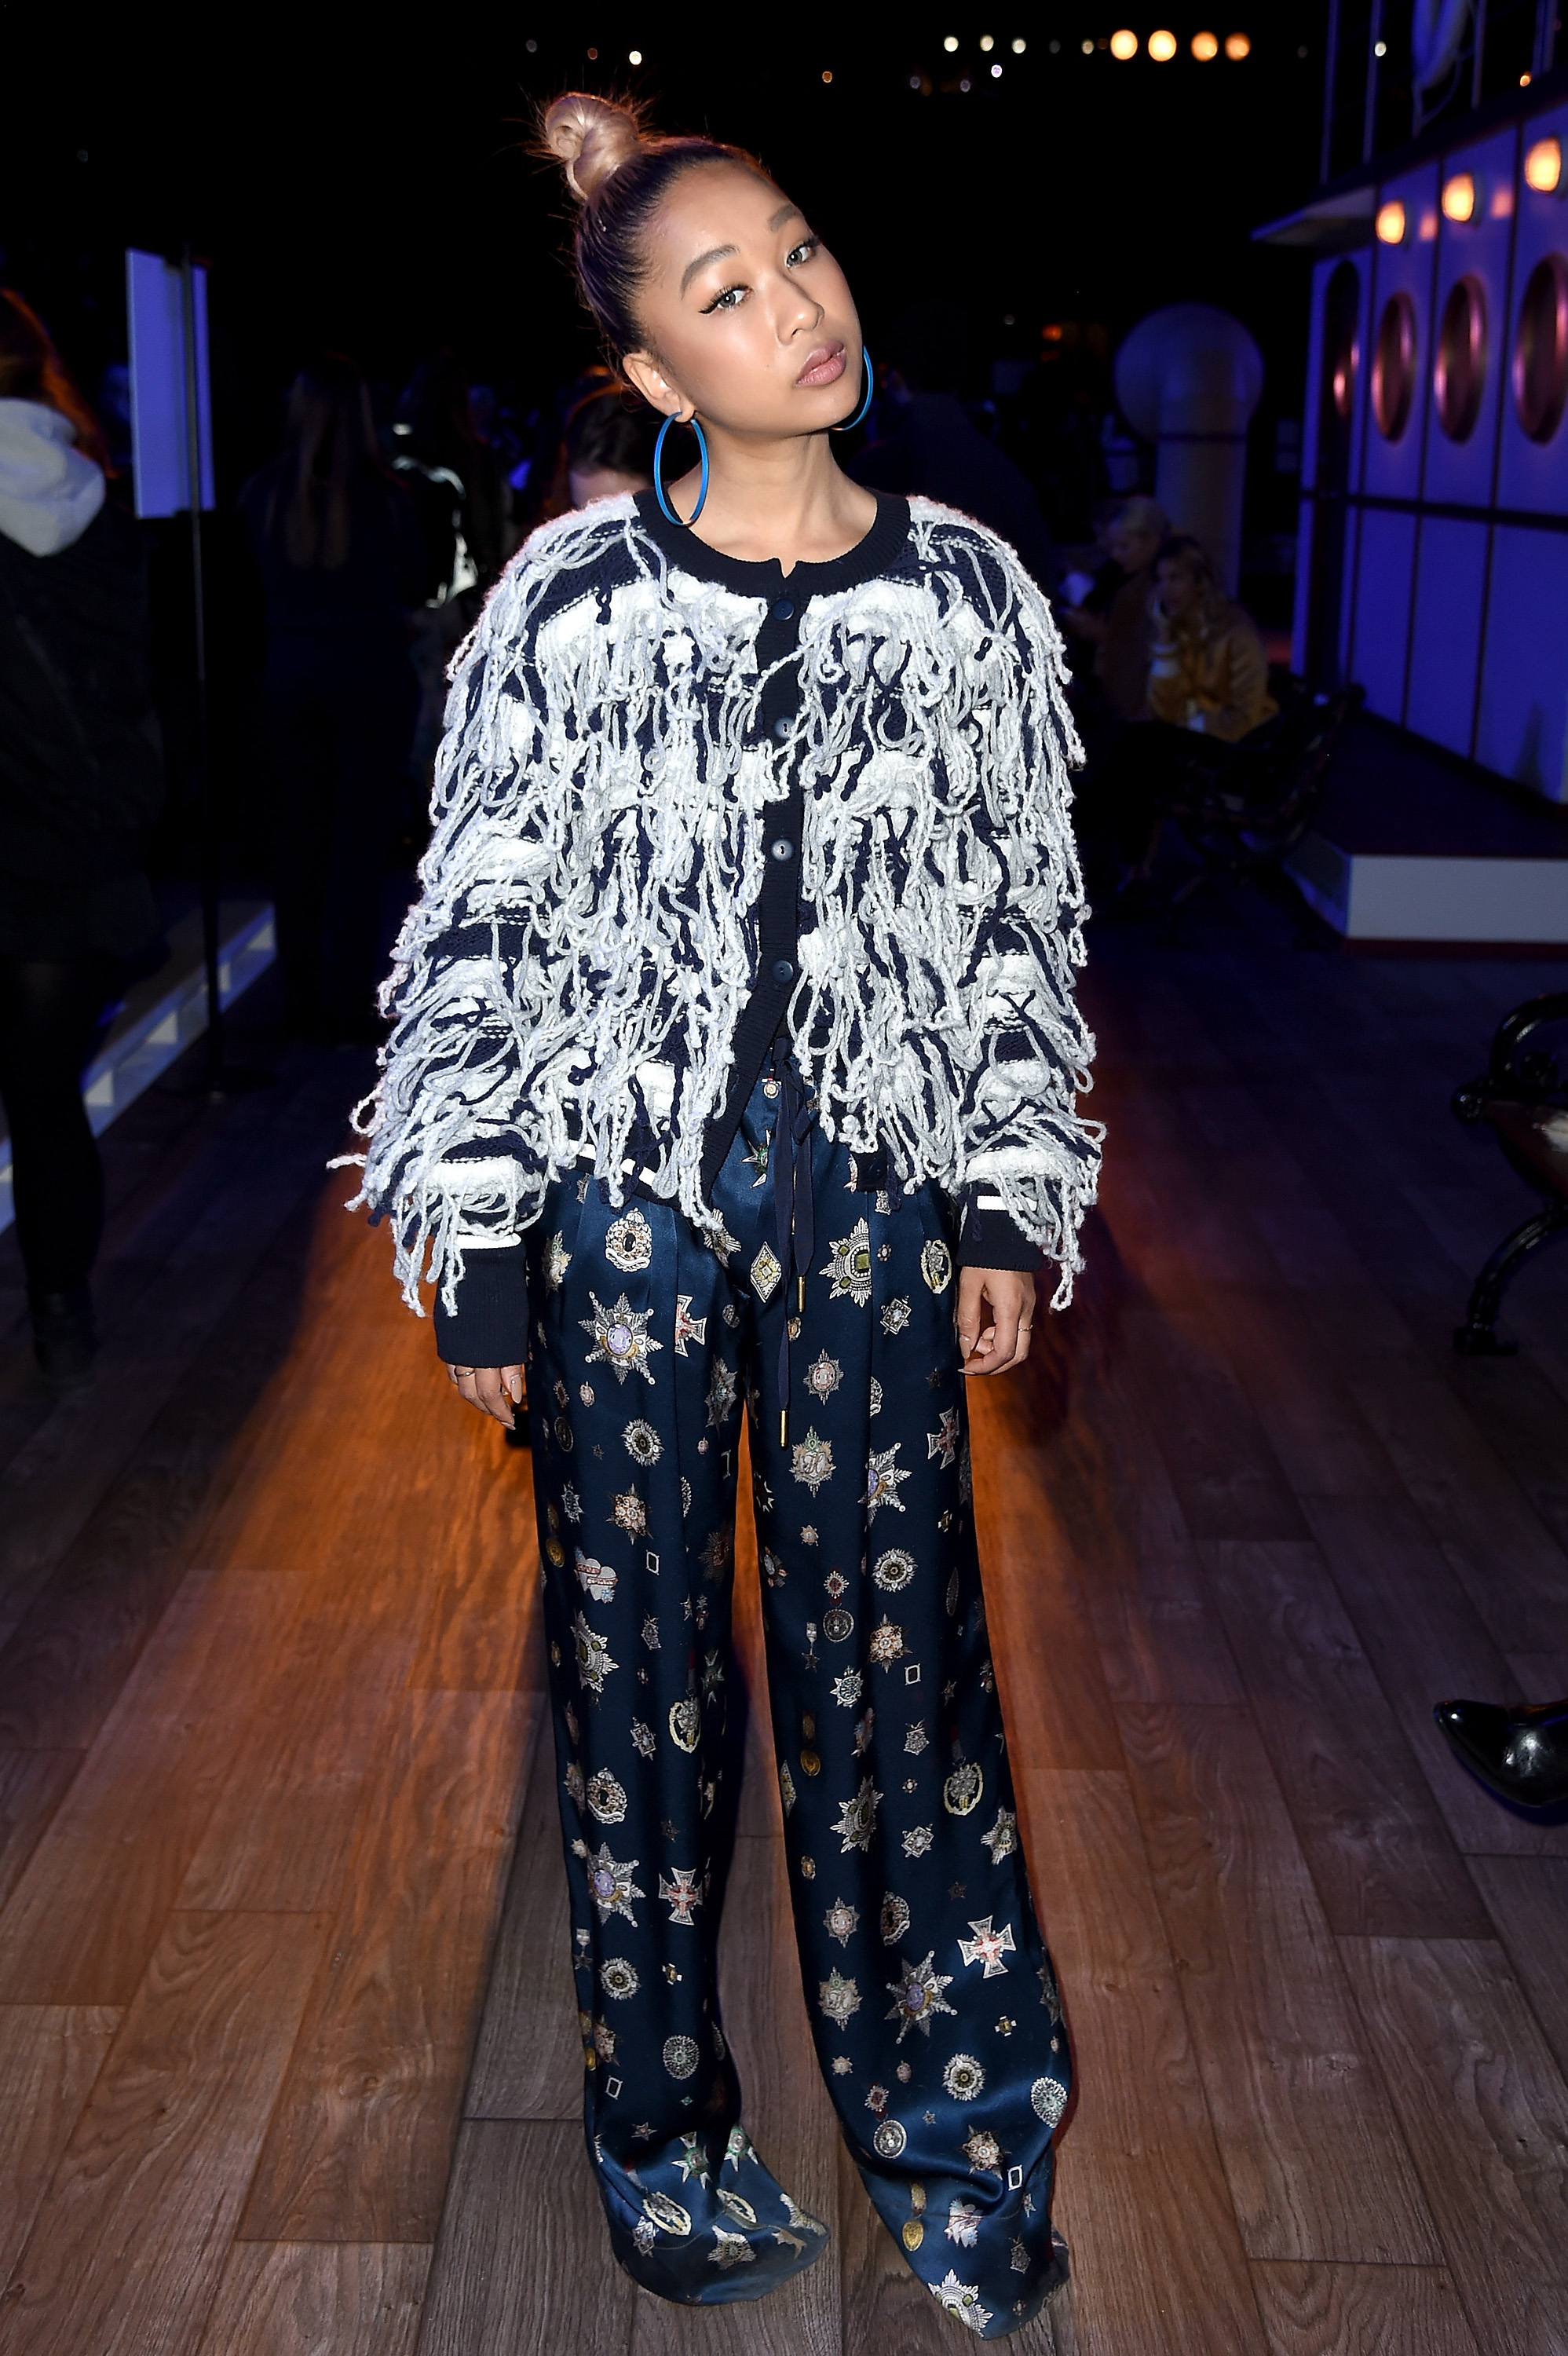 NEW YORK, NY - FEBRUARY 15: Singer Thelma Aoyama attends the Tommy Hilfiger Women's Fall 2016 show durong New York Fashion Week: The Shows at Park Avenue Armory on February 15, 2016 in New York City. (Photo by Nicholas Hunt/Getty Images for Tommy Hilfiger)